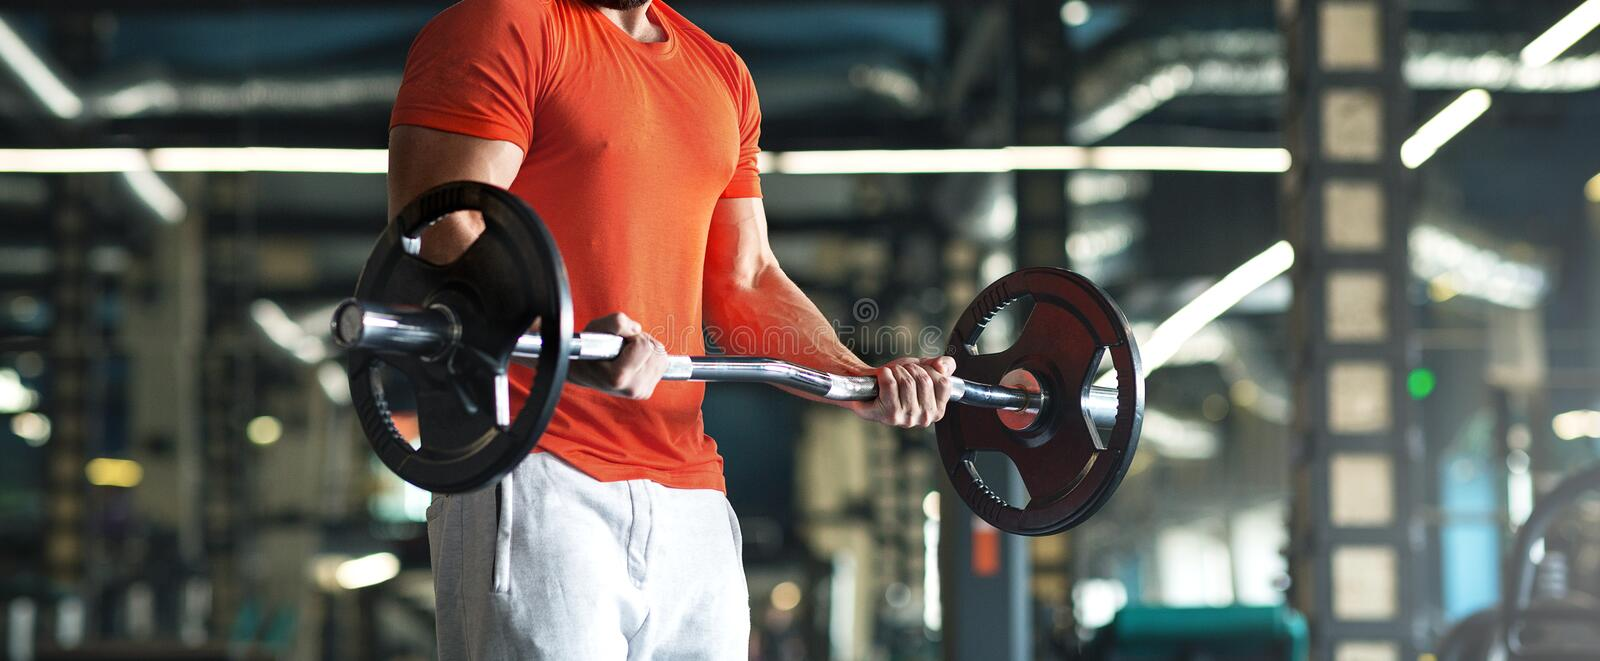 Muscular man working out in gym doing exercises with barbell at biceps royalty free stock photo